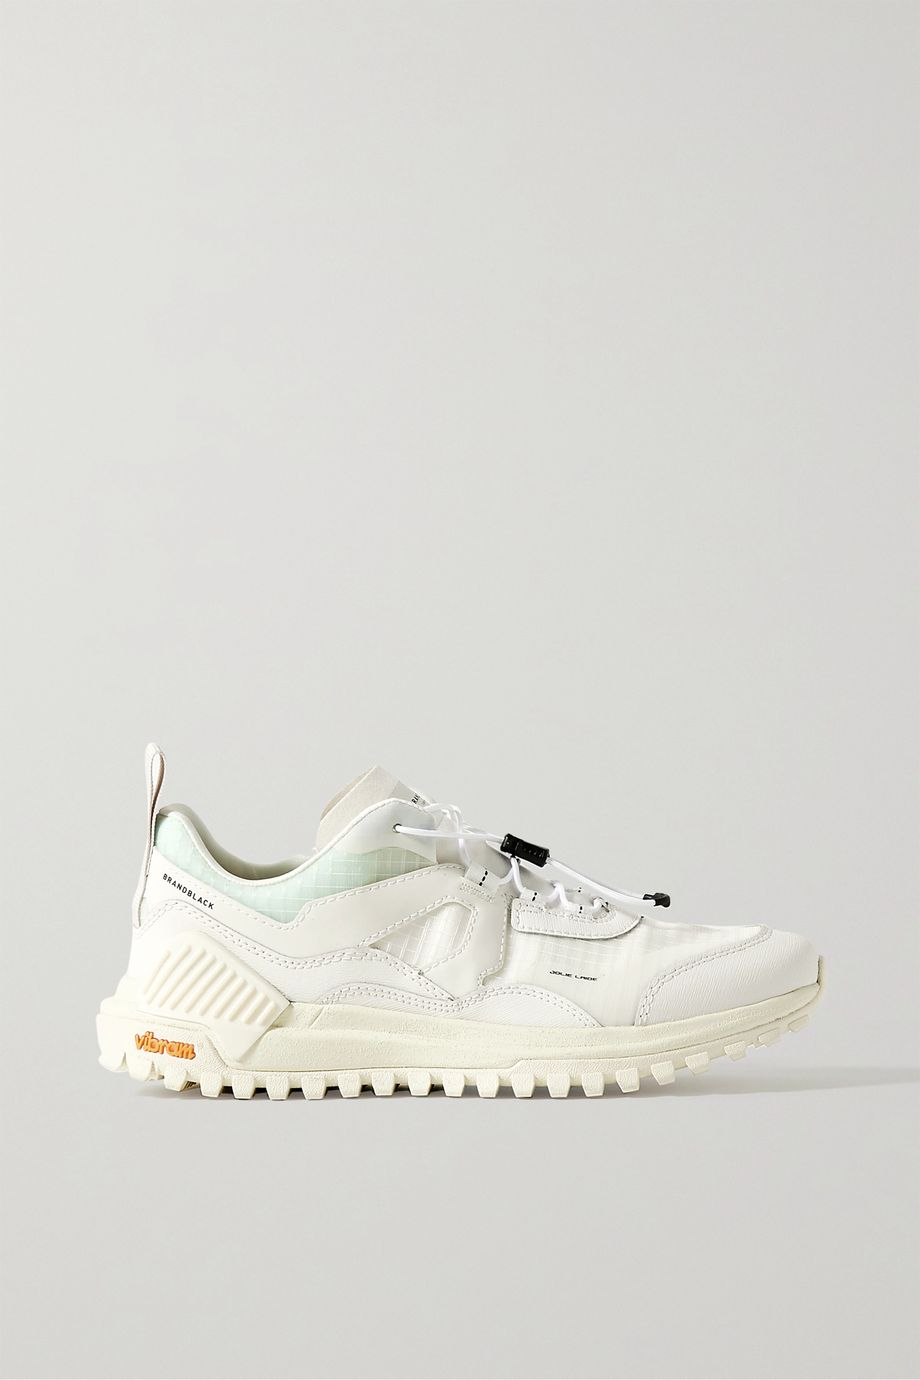 Brandblack Sierra smooth and textured leather-trimmed ripstop sneakers